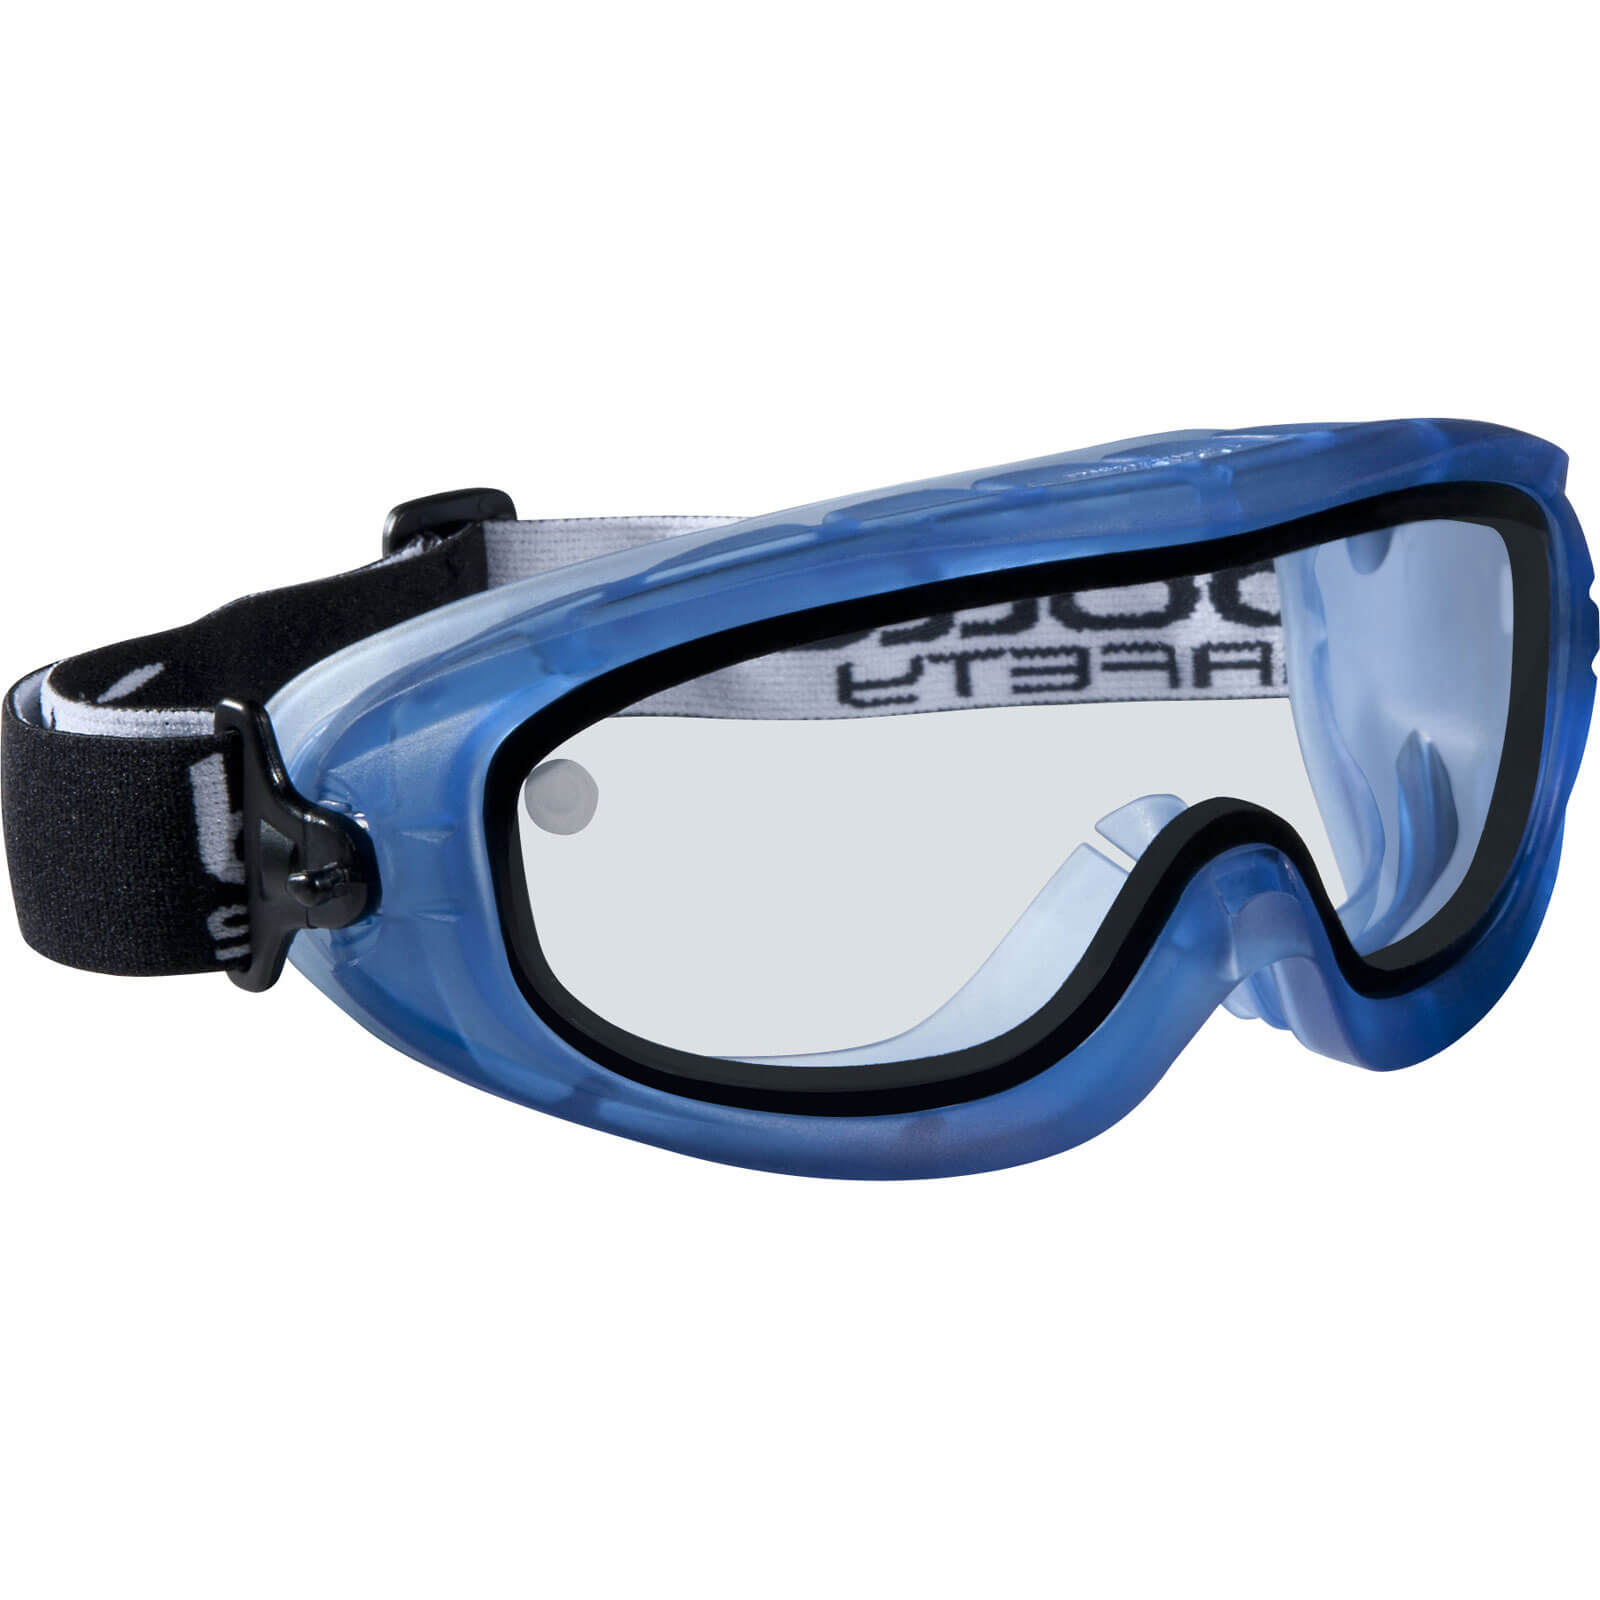 Image of Bolle Atom ATOEDEPSI Clear Blue Dual Lens Safety Goggles